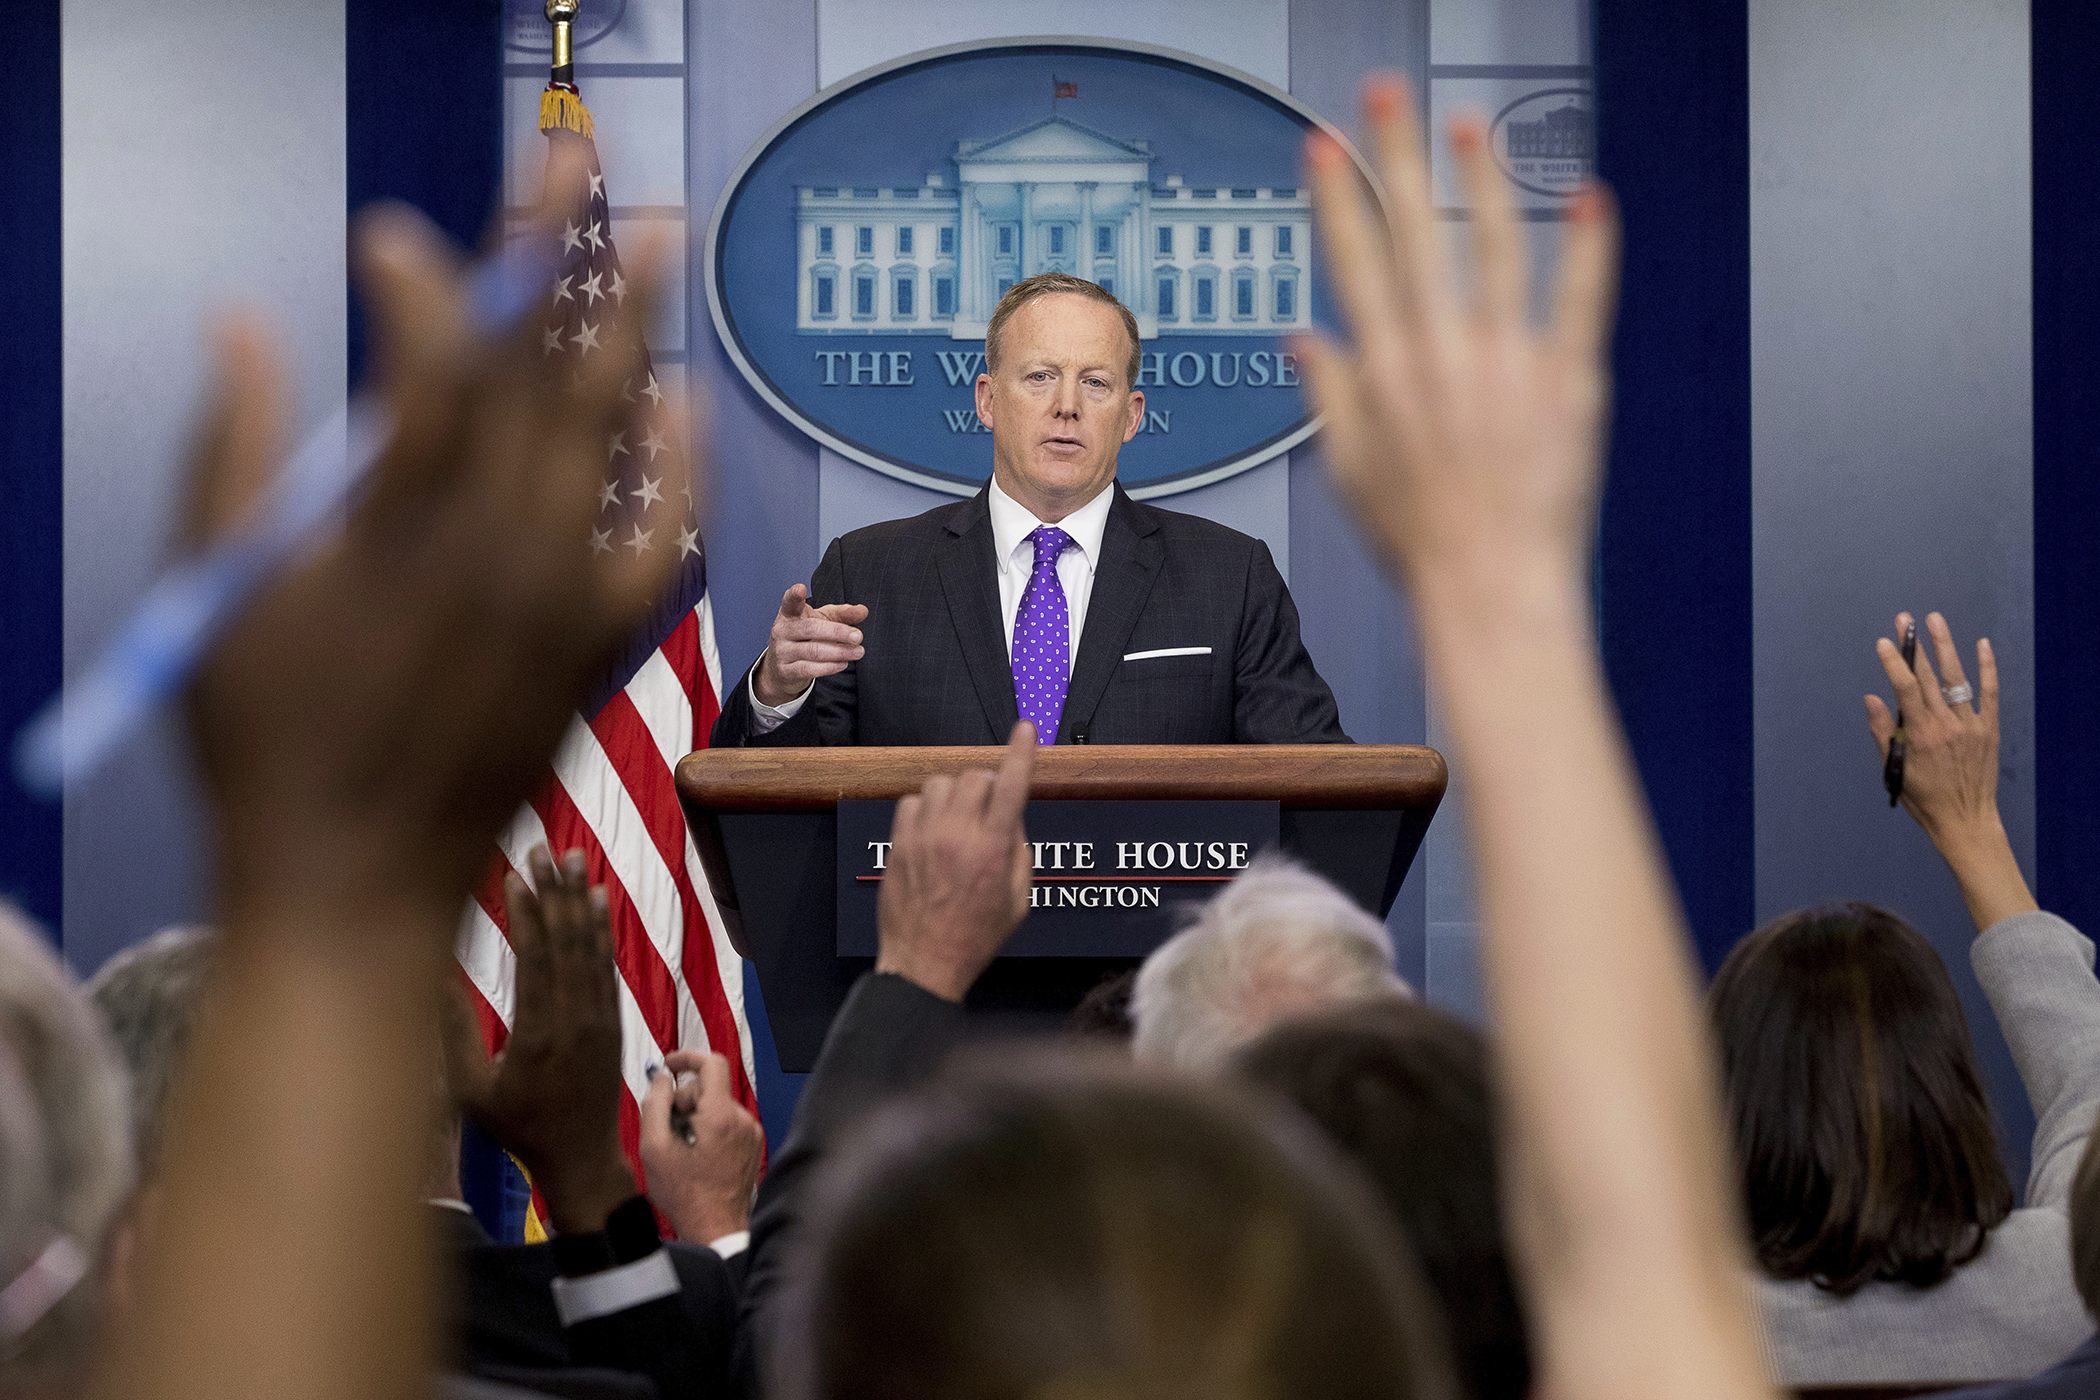 White House press secretary Sean Spicer calls on a member of the media during the daily press briefing at the White House in Washington